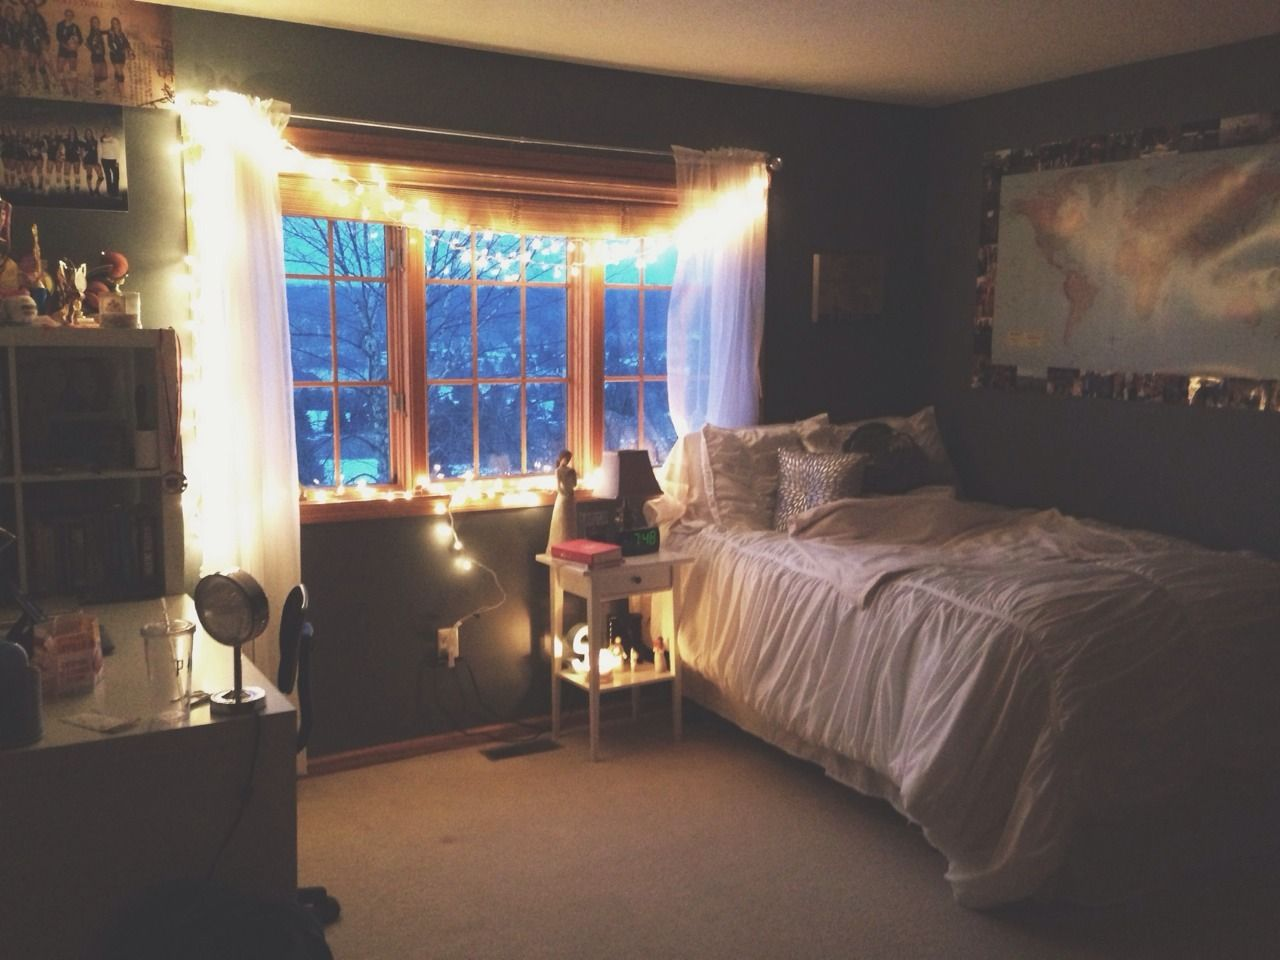 Tumblr bedrooms with lights - Lights Can Completely Transform A Bedroom From Boring To Radiant And Fun